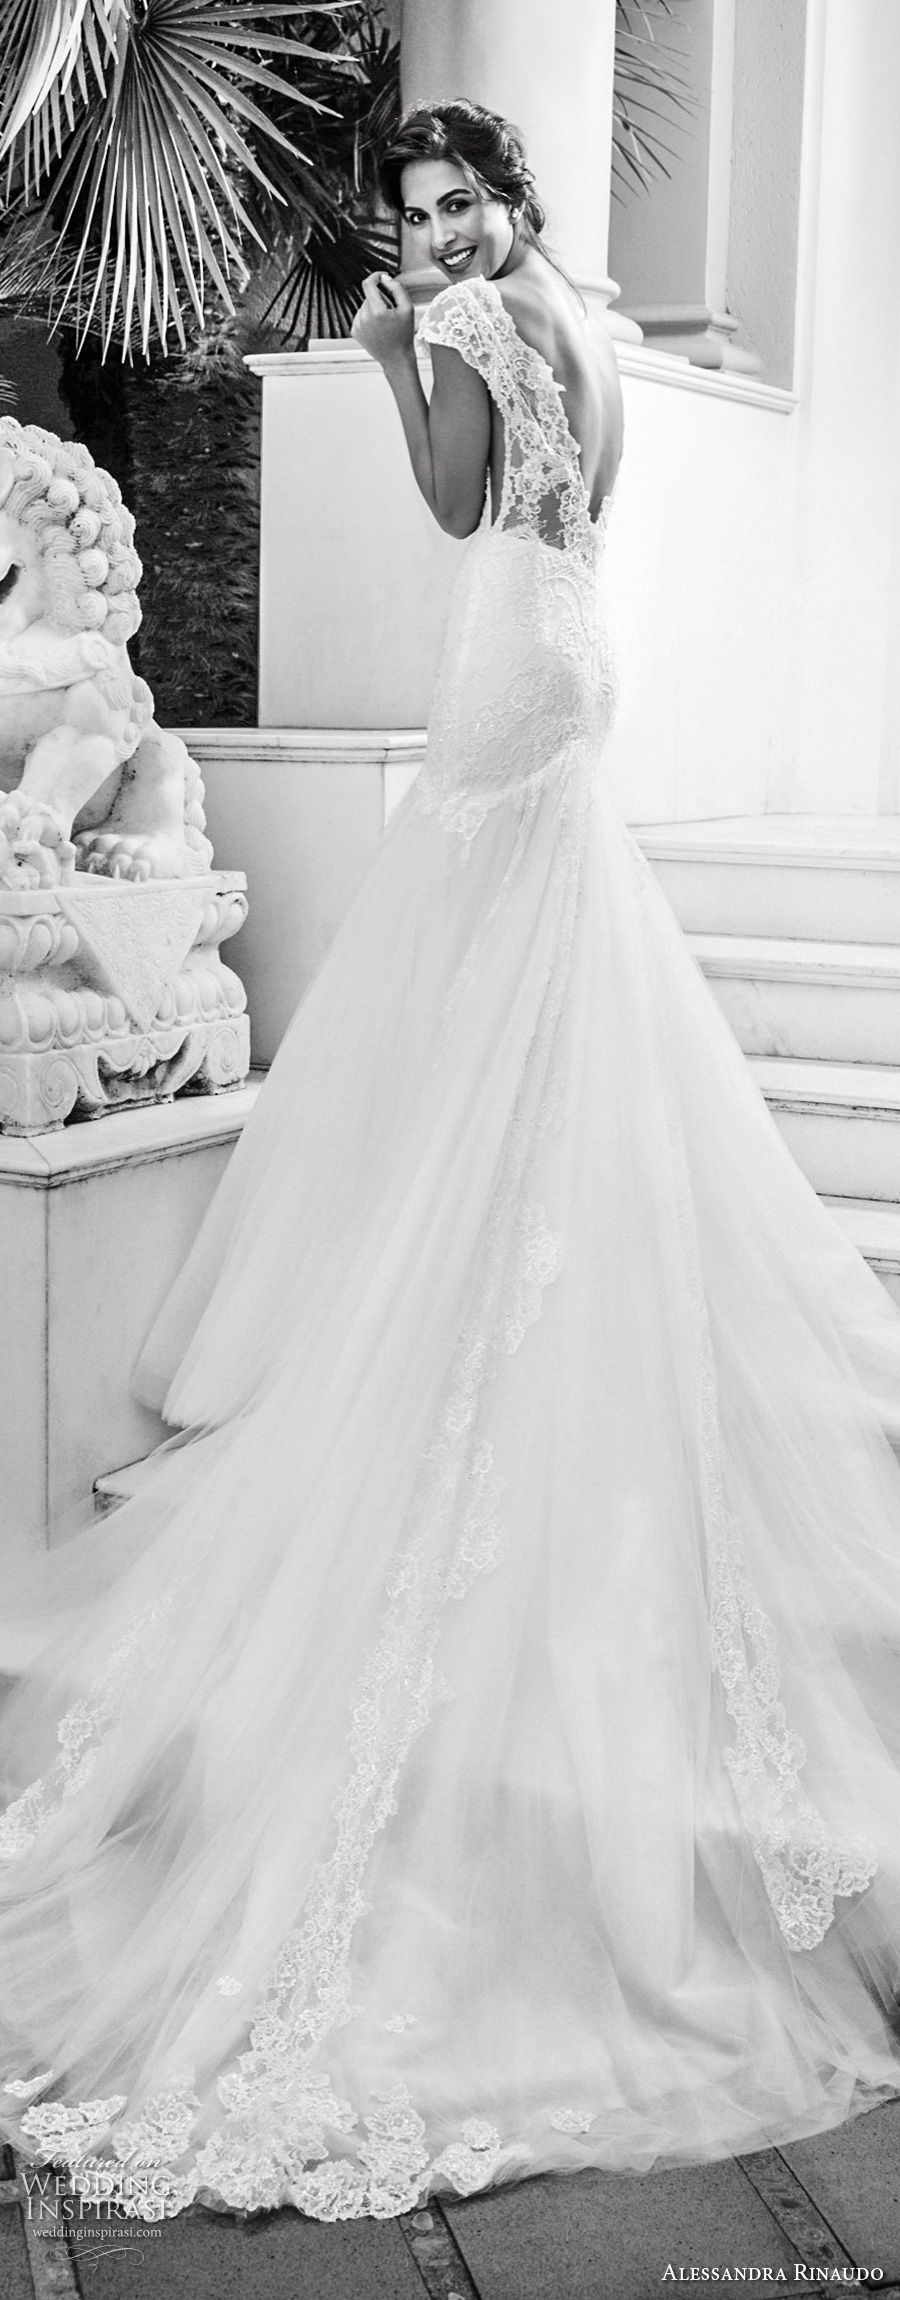 alessandra rinaudo 2018 bridal cap sleeves deep plunging sweetheart neckline heavily embellished bodice elegant mermaid wedding dress open v back chapel train (09) bv